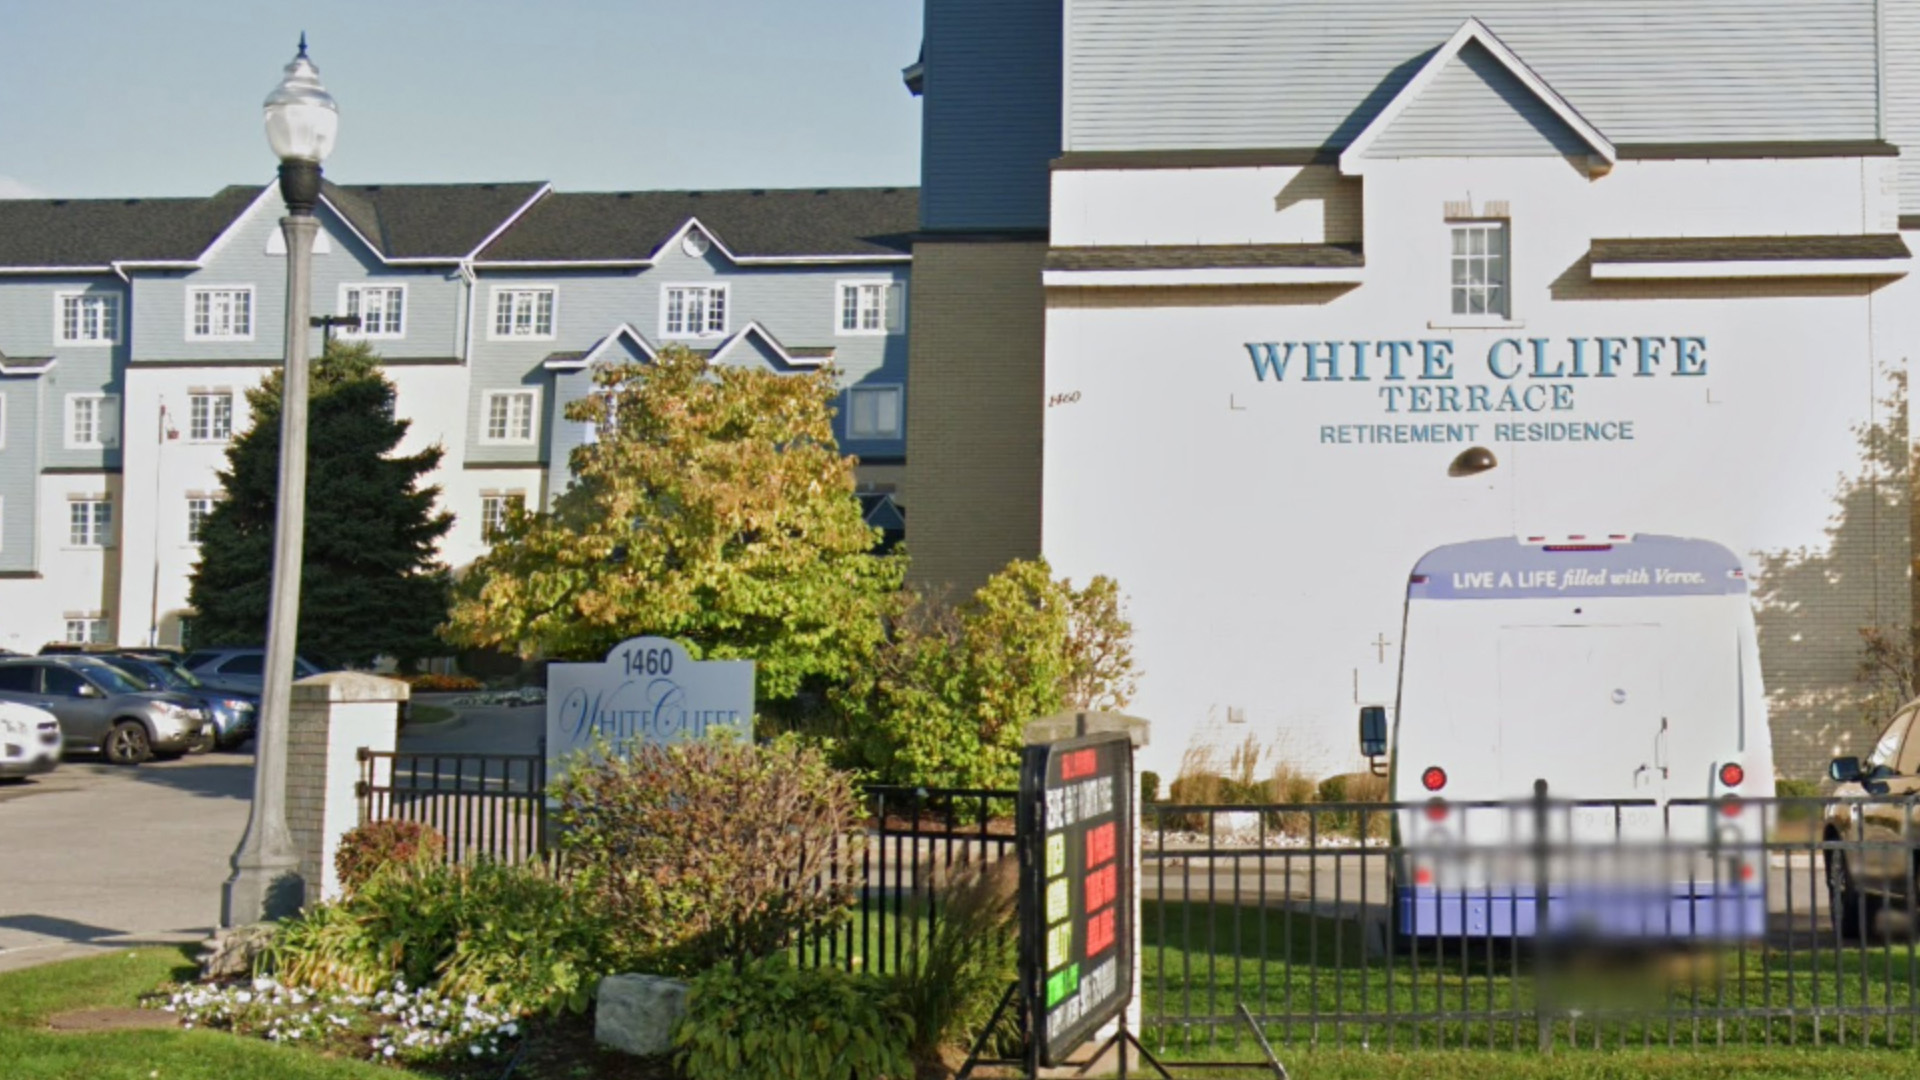 Charges laid after staff removed door handles in retirement home during COVID